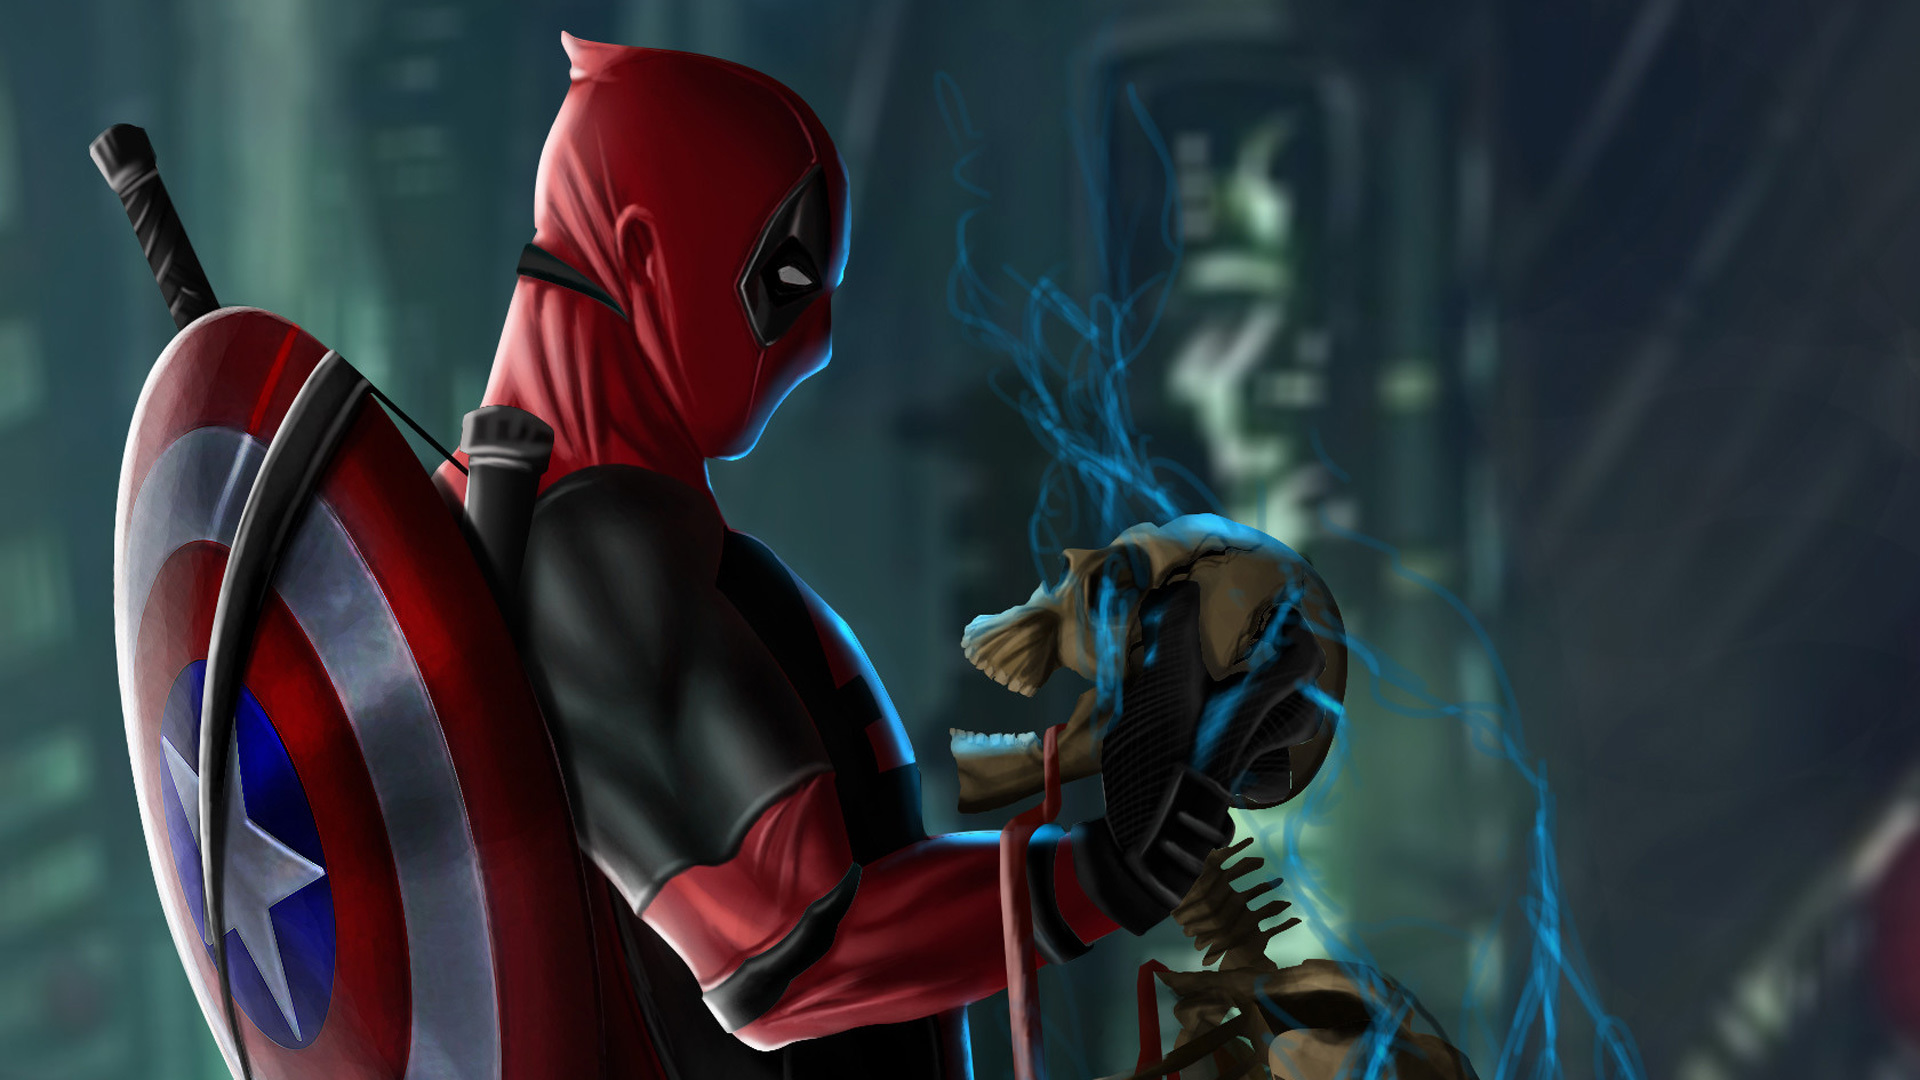 1920x1080 Deadpool With Captain America Shield Laptop Full Hd 1080p